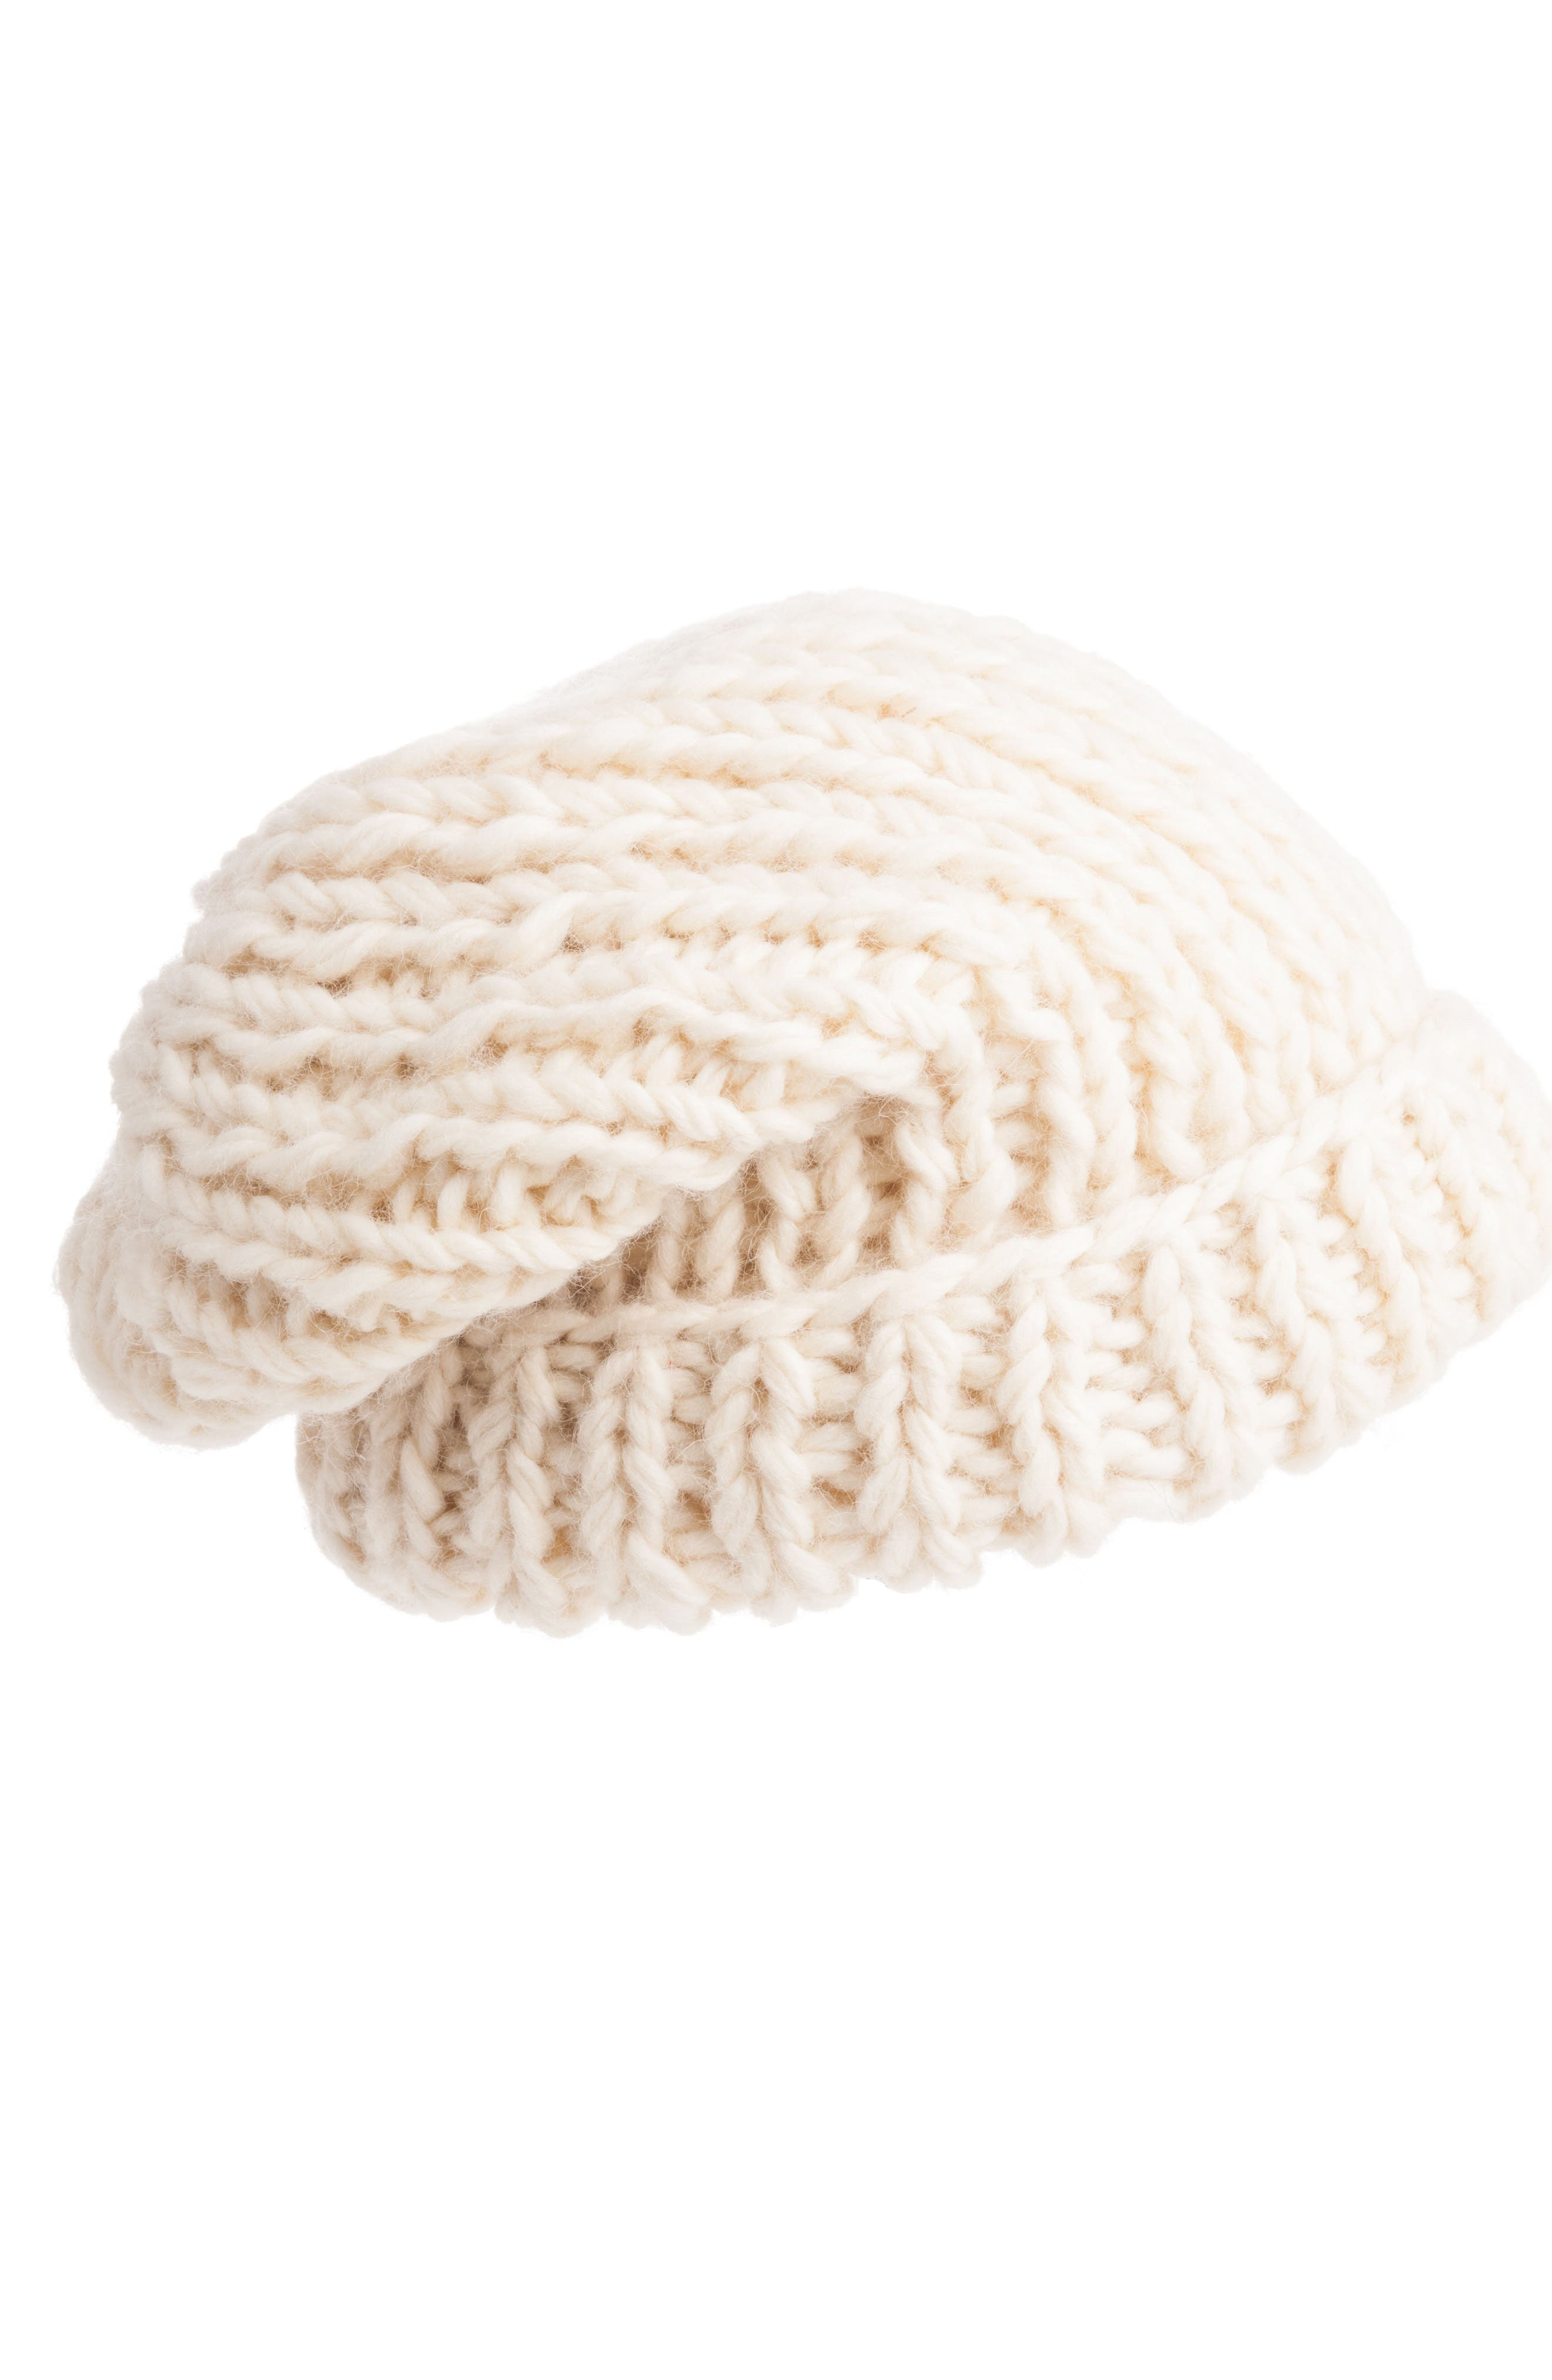 Alternate Image 1 Selected - Nirvanna Designs Chunky Knit Slouchy Wool Cap